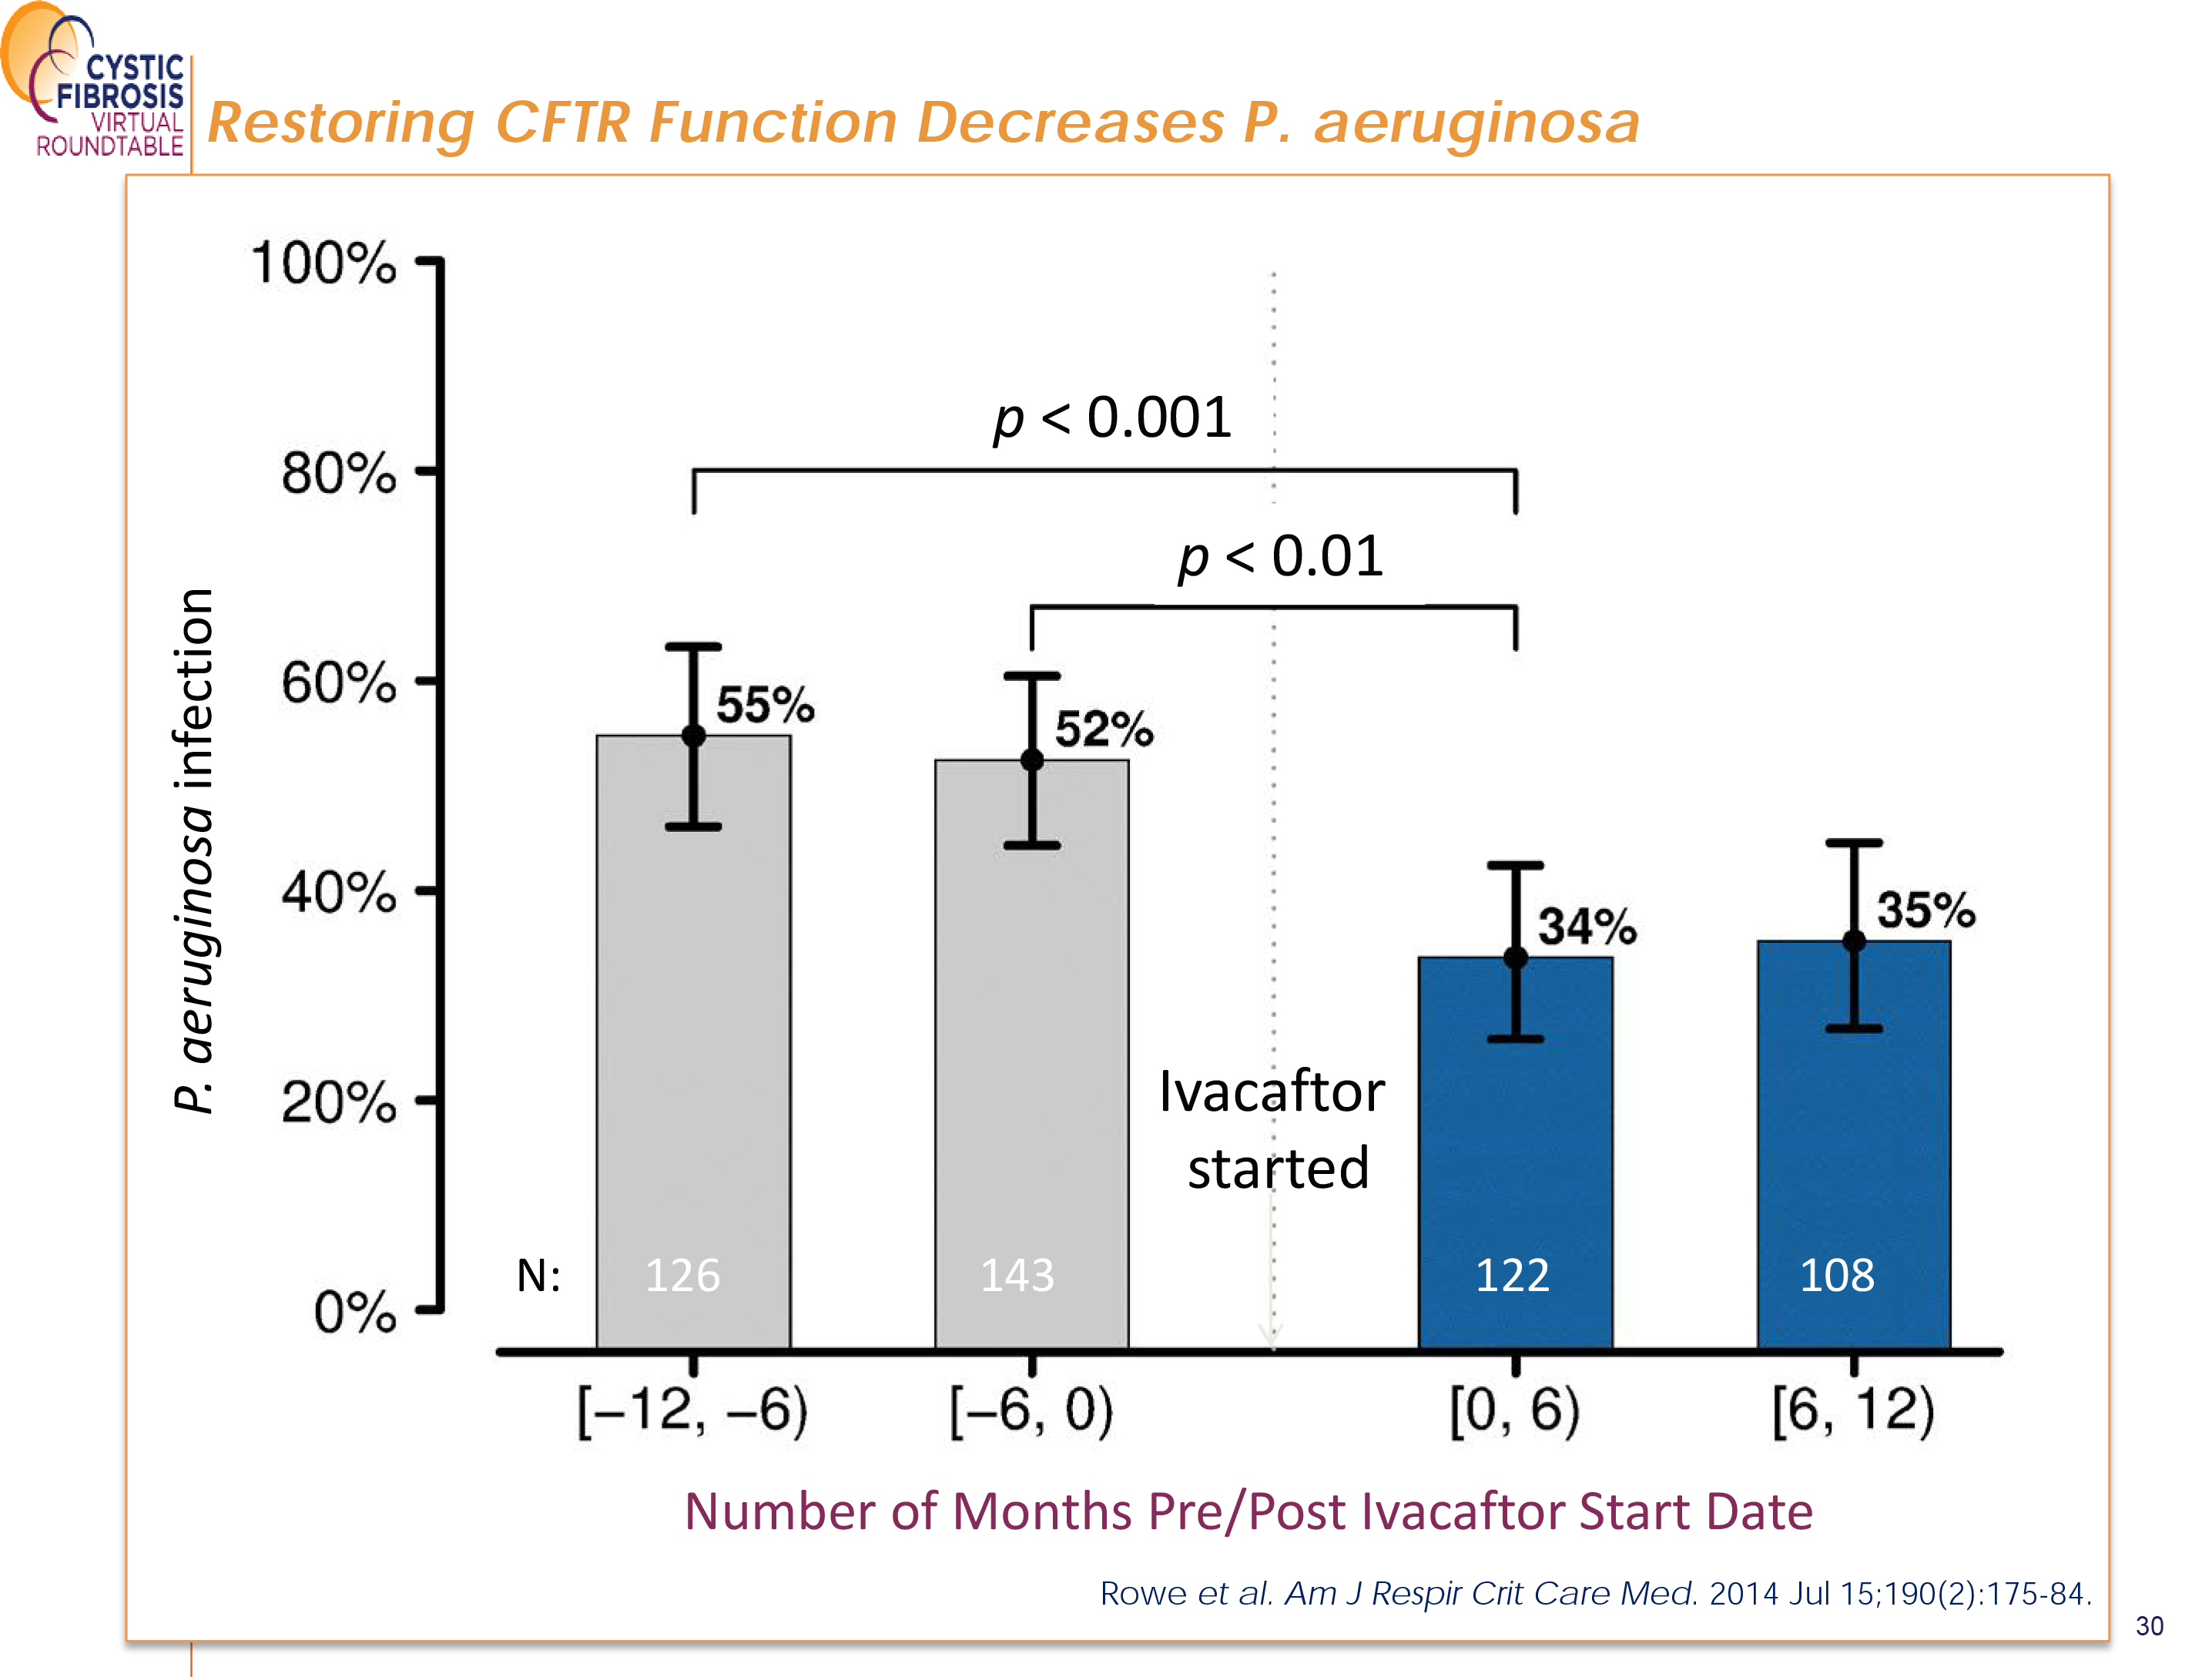 Restoring CFTR Function Decreases P. aeruginosa